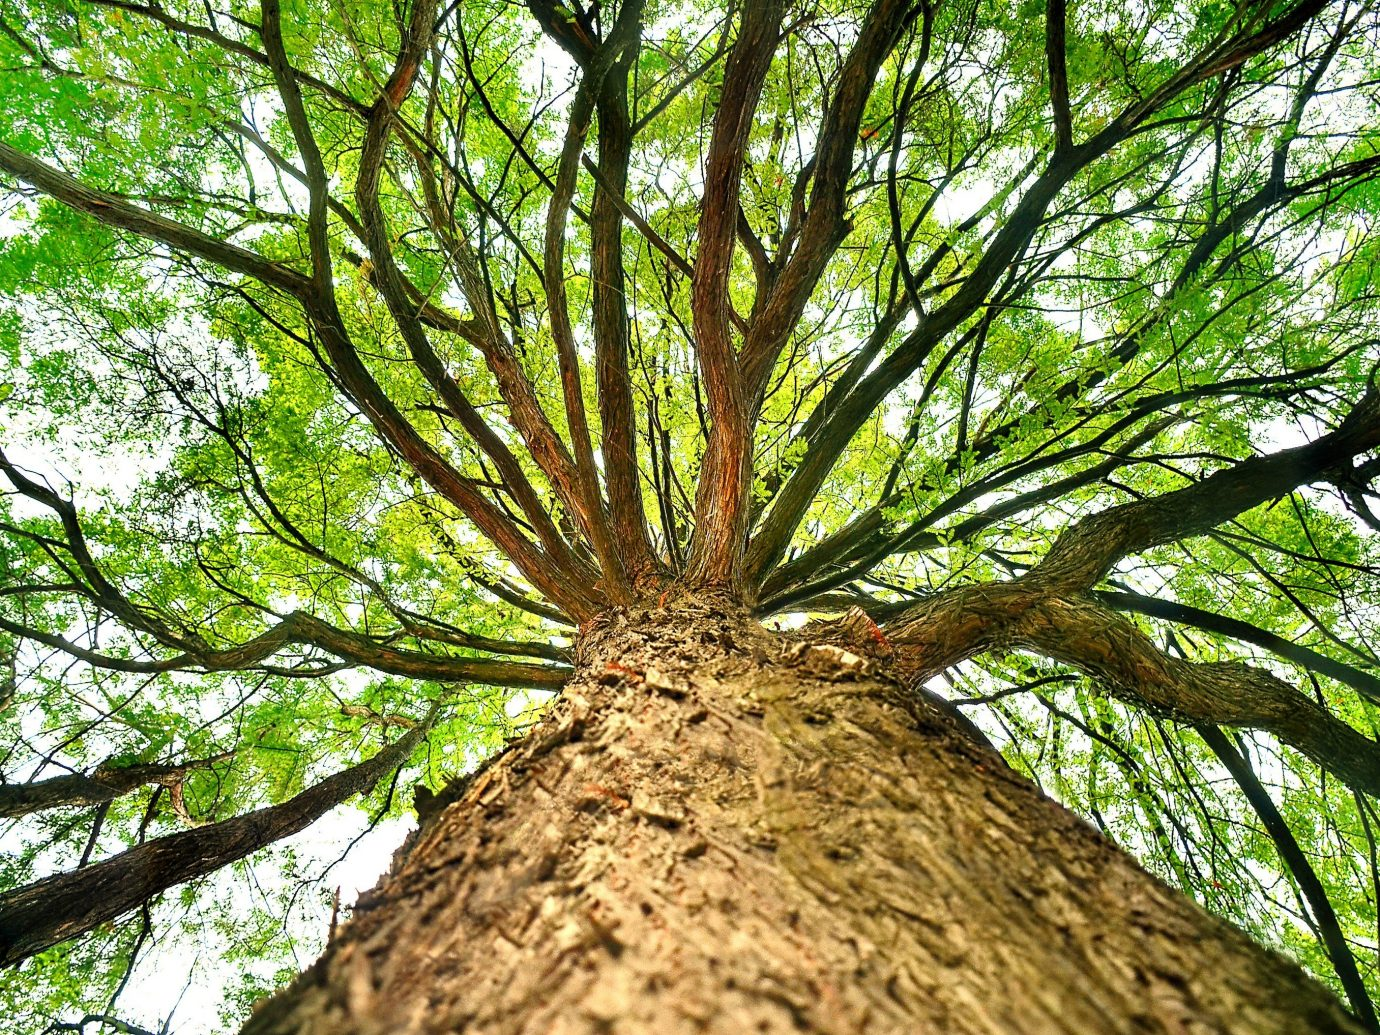 Trip Ideas tree outdoor plant habitat vegetation flora natural environment ecosystem Forest botany trunk branch leaf land plant woody plant arecales rainforest woodland flower old growth forest willow Jungle deciduous flowering plant plant stem oak wooded